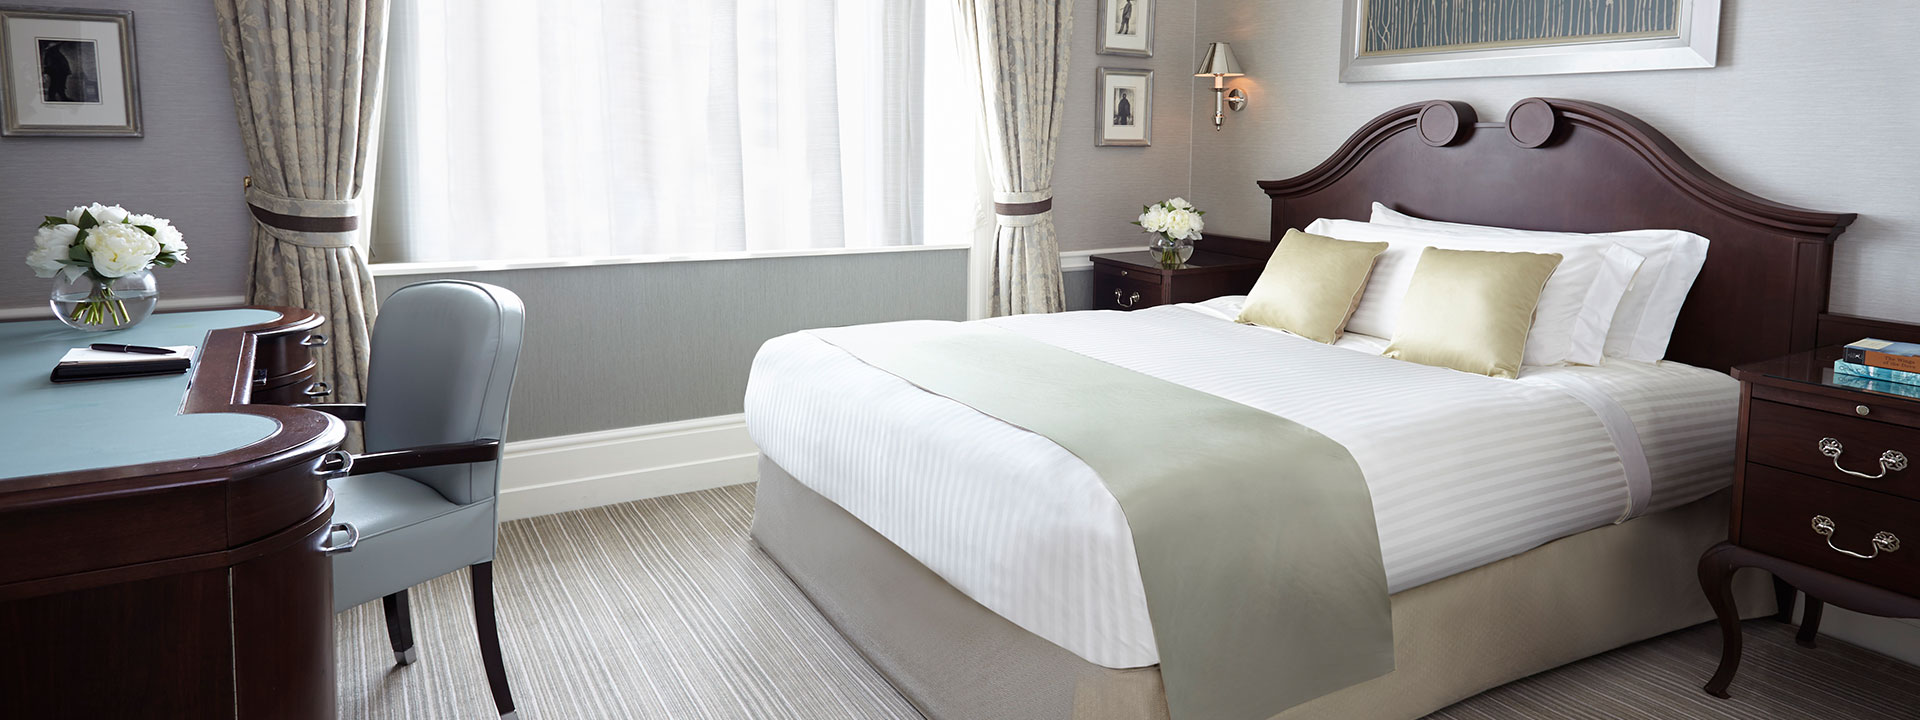 Superior queen room queen bed added style the connaught - Queen bed ideas for small room ...